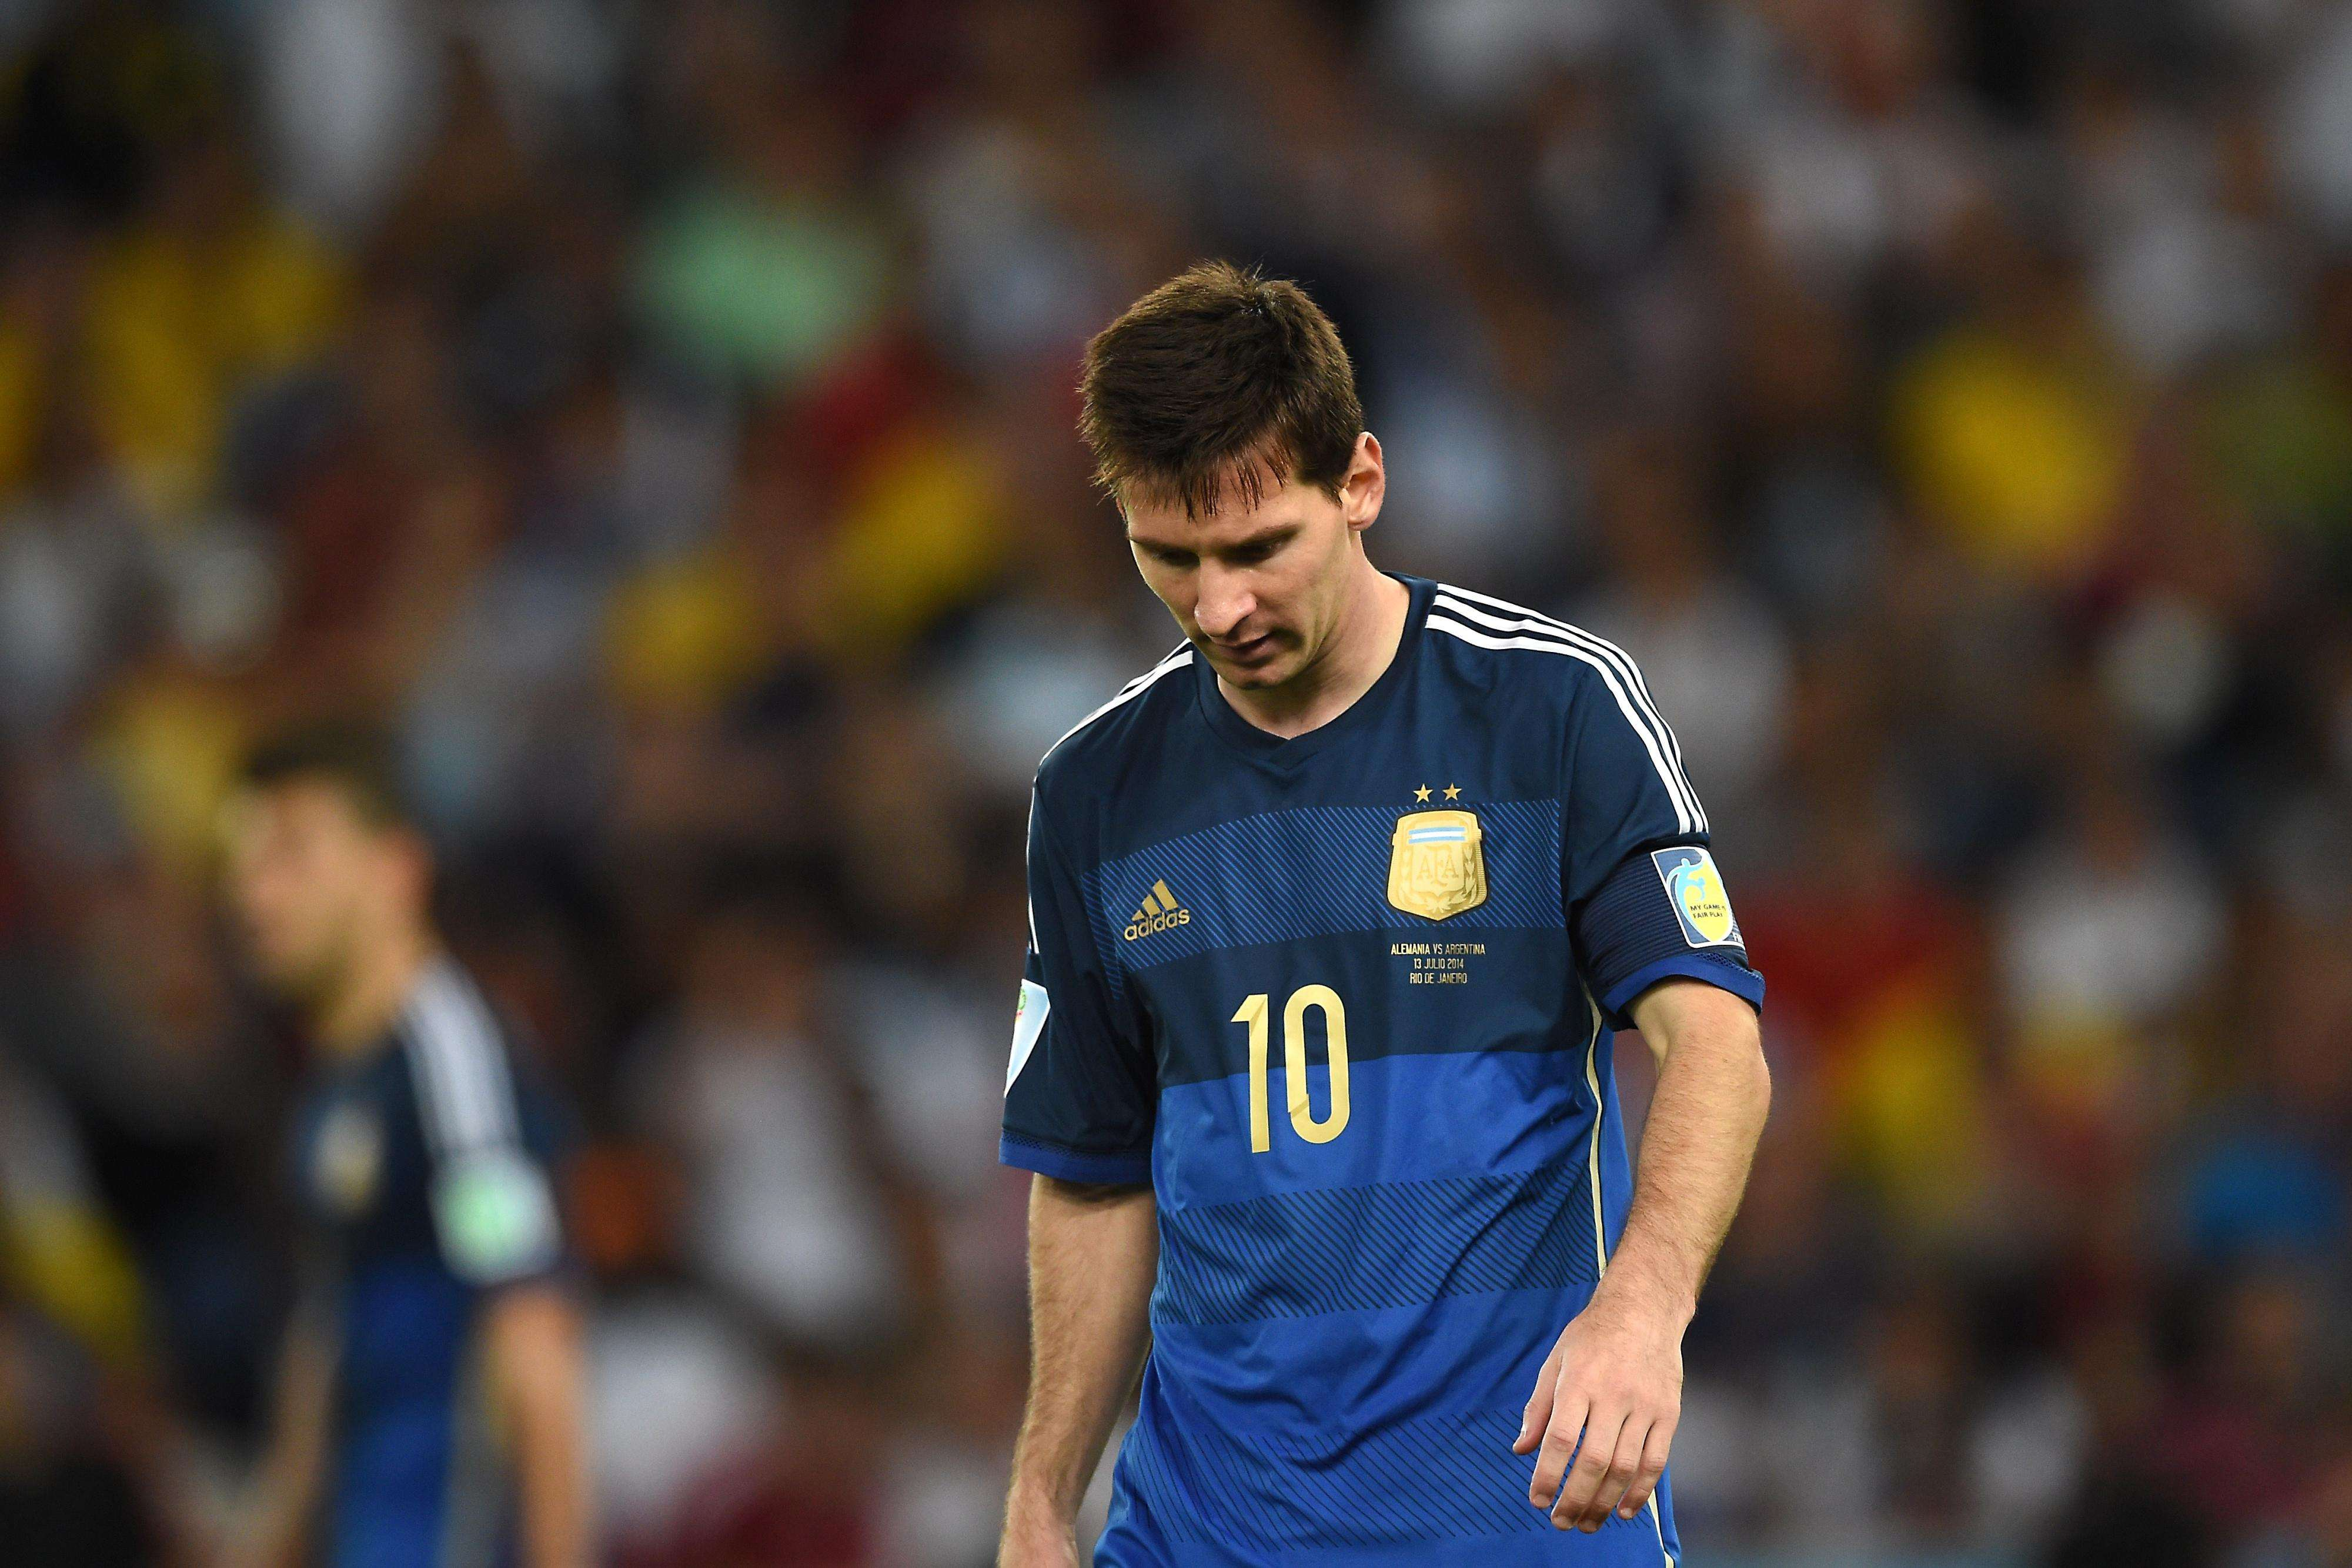 Messi's World Cup ends on bitter note